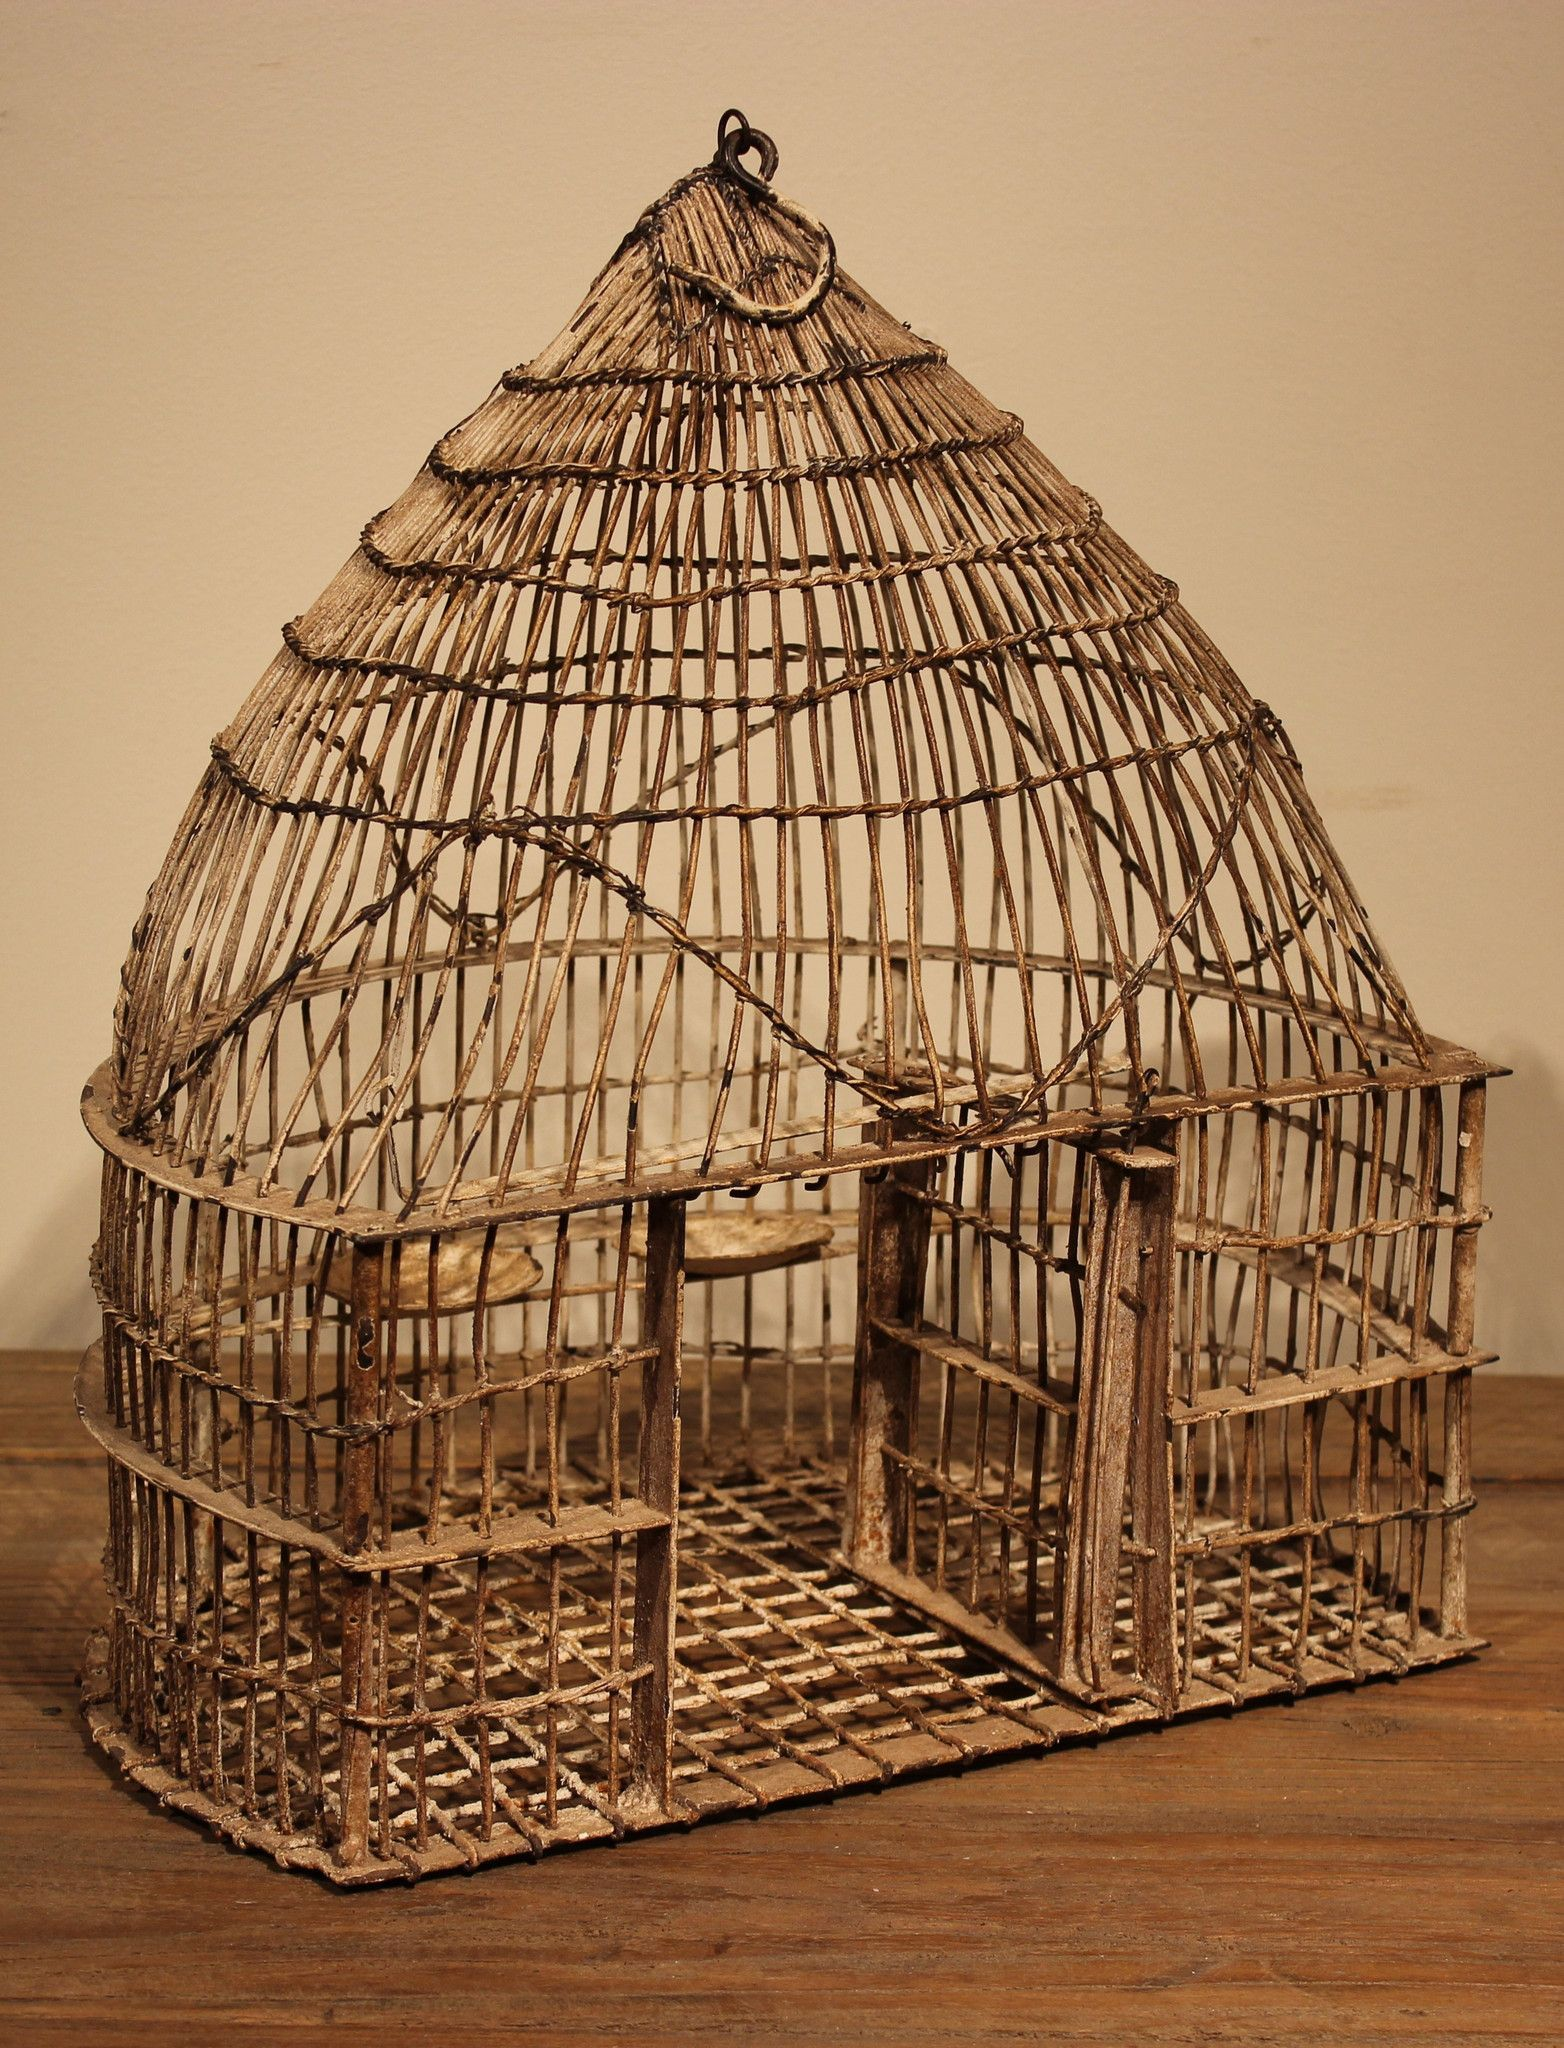 60 - 80 year old bird cage from India - Wire frame with distressed ...